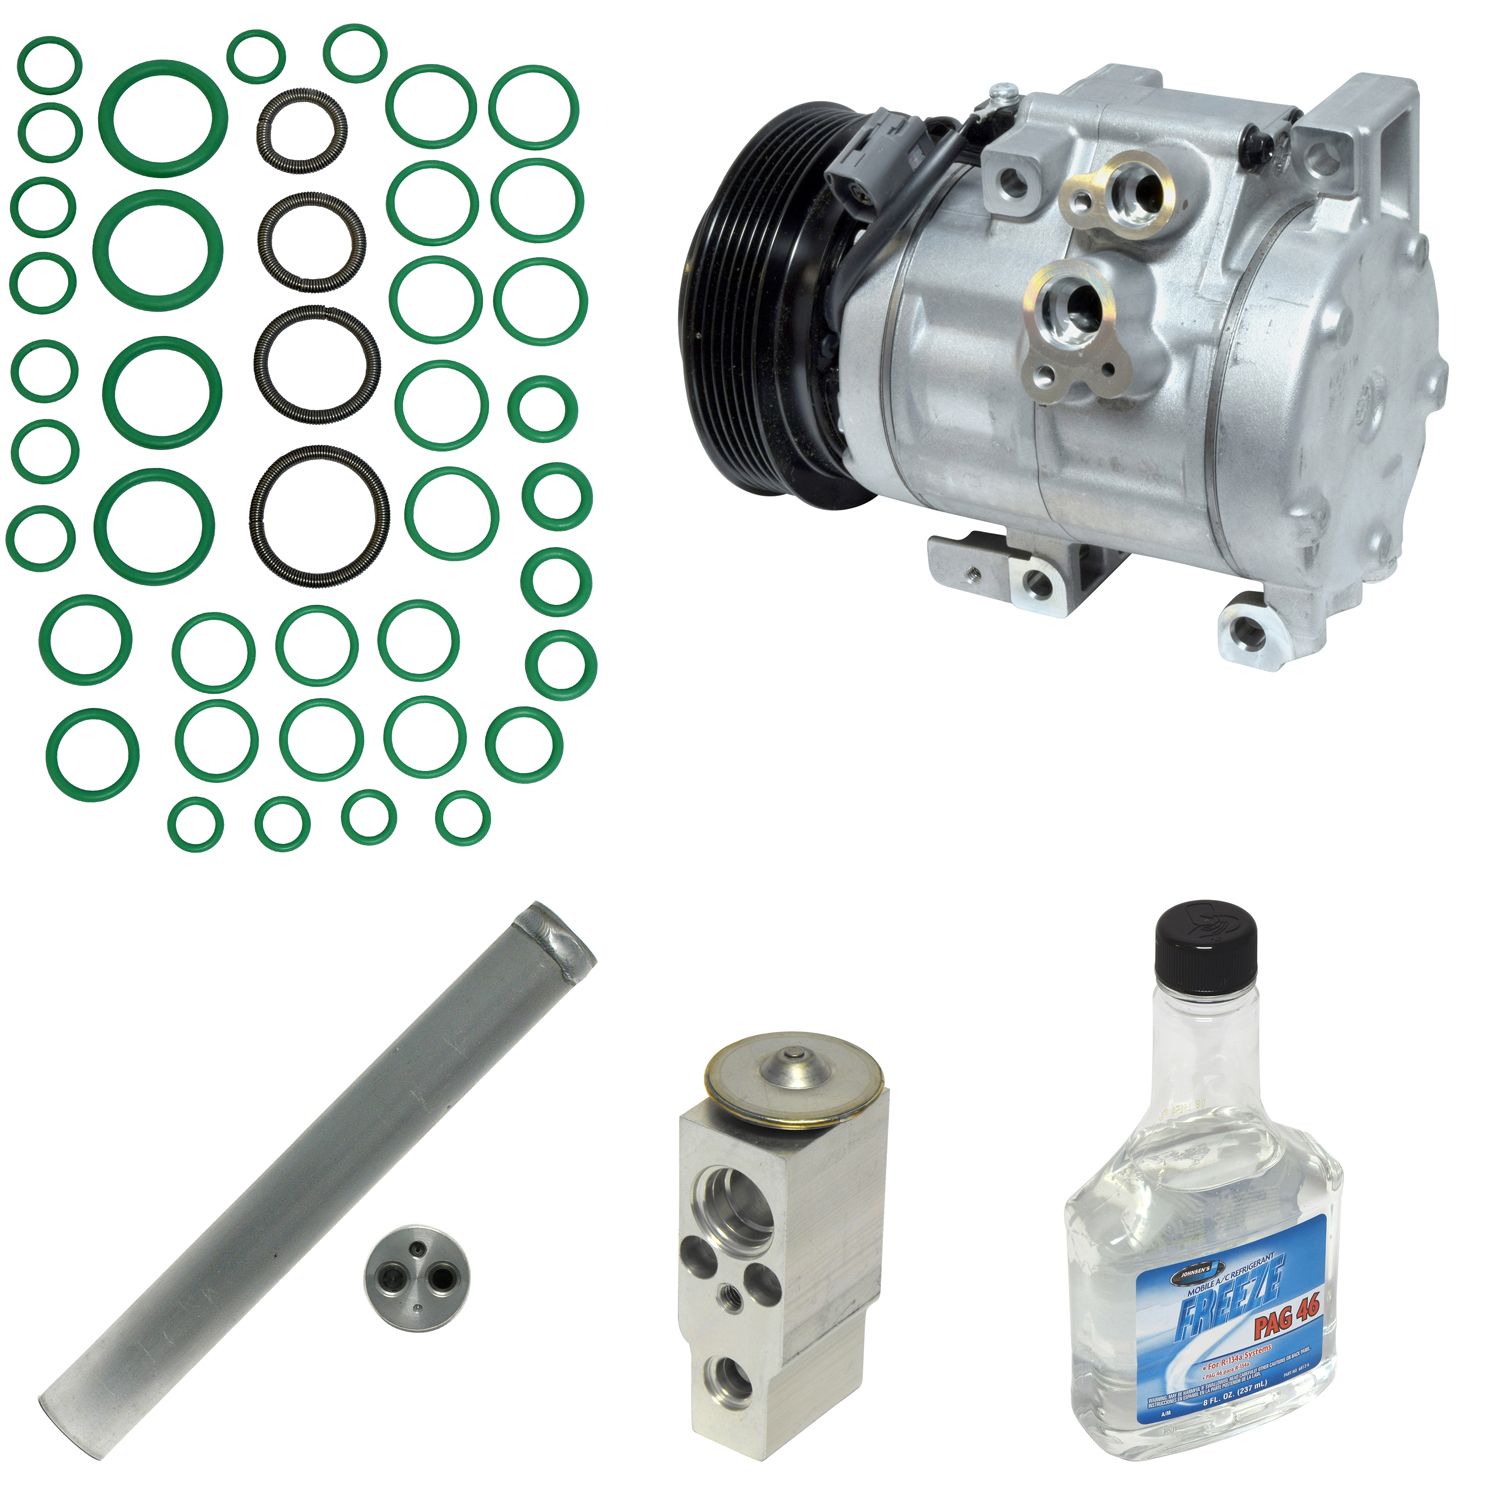 CX-7 New A//C Compressor and Component Kit KT 1346A